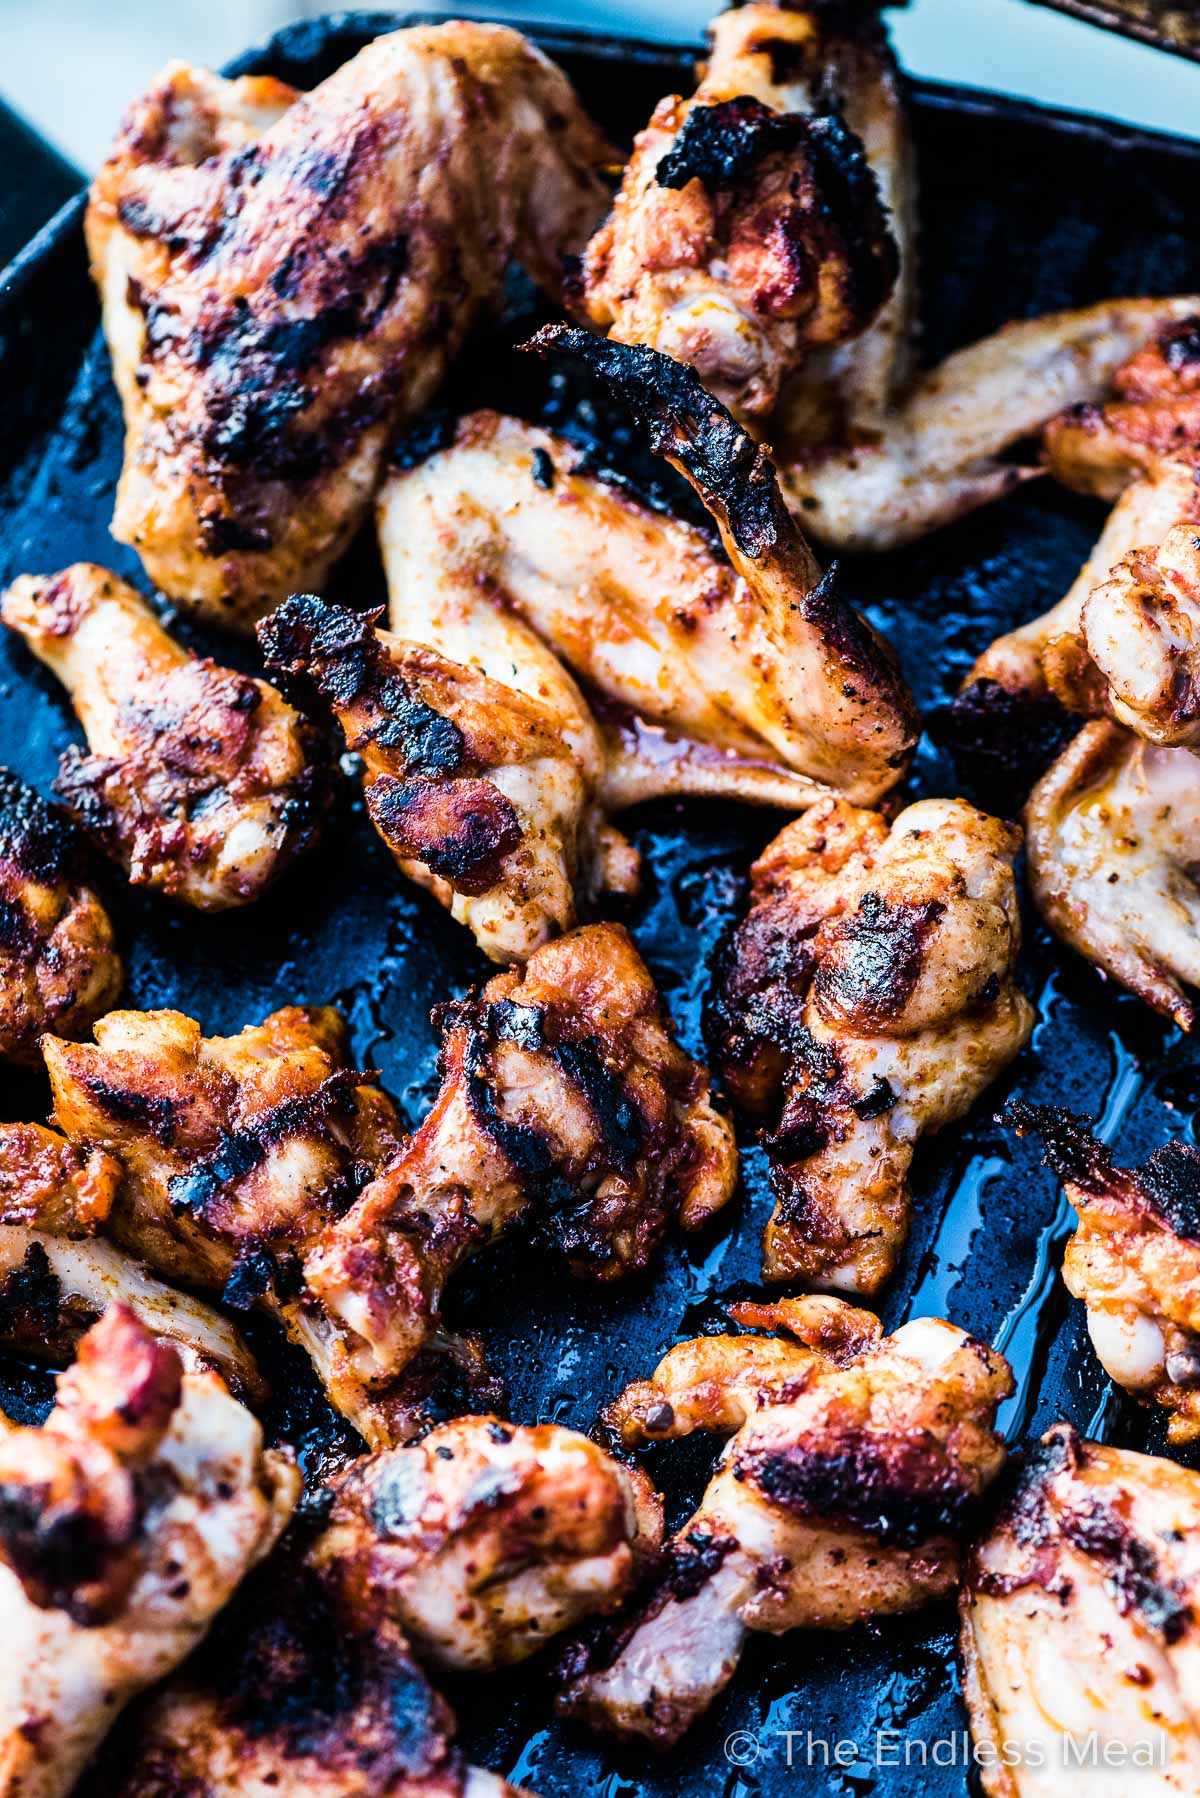 grilled chicken wings on the bbq